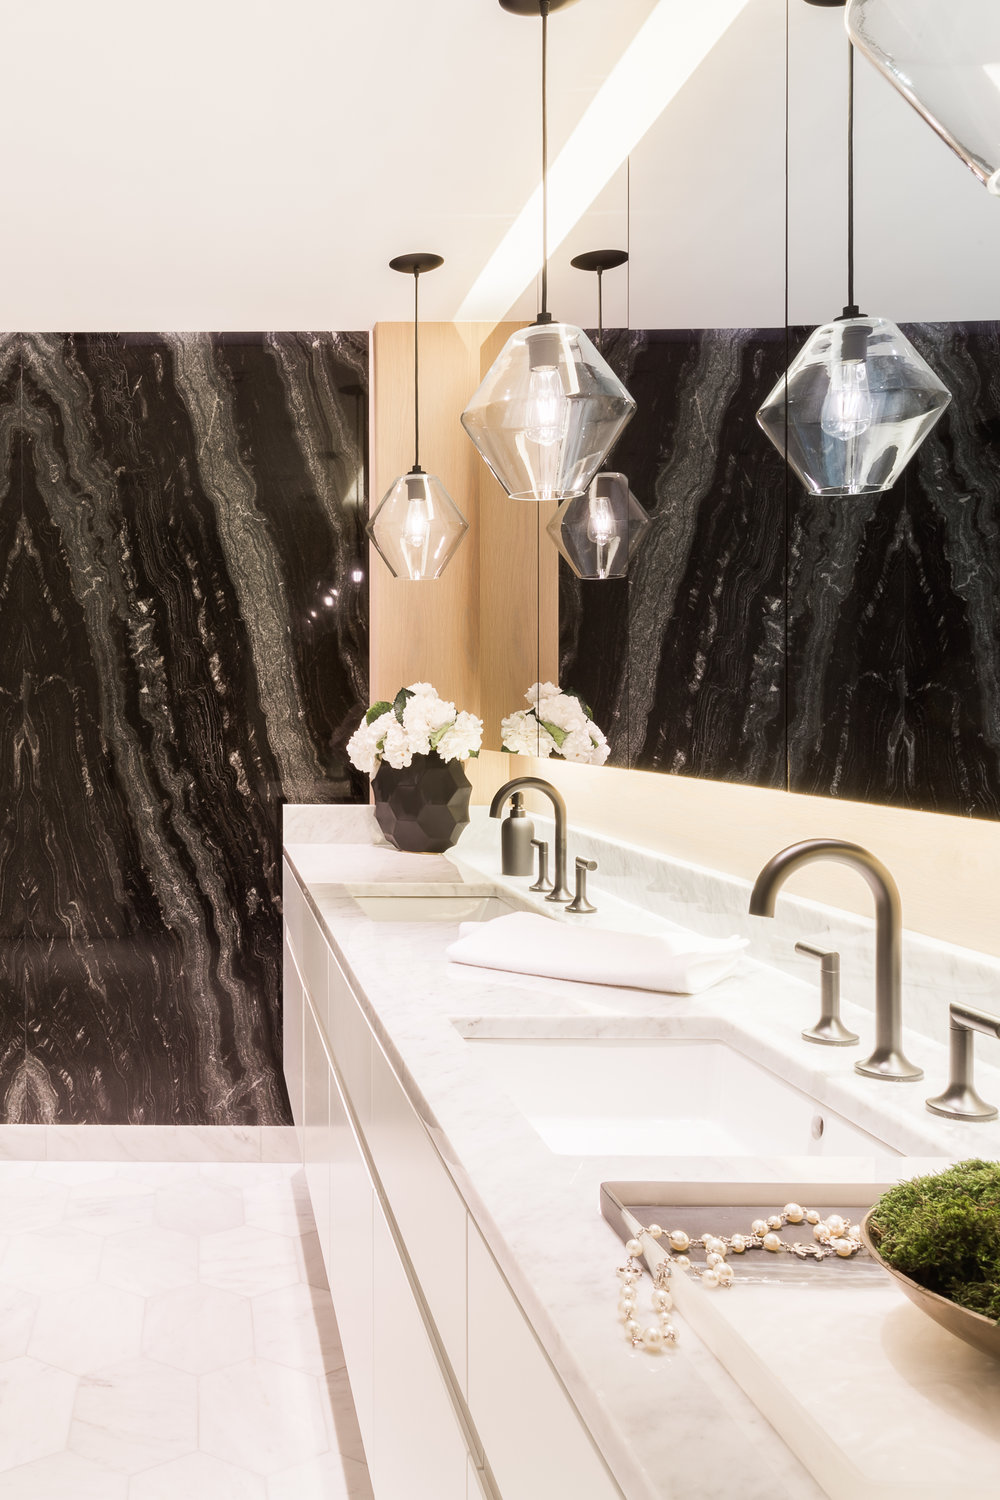 NICHE MODERN  FEATURES  WATER TOWER FLAT   Bathroom pendant lighting adds sophisticated touch to couple's condo.